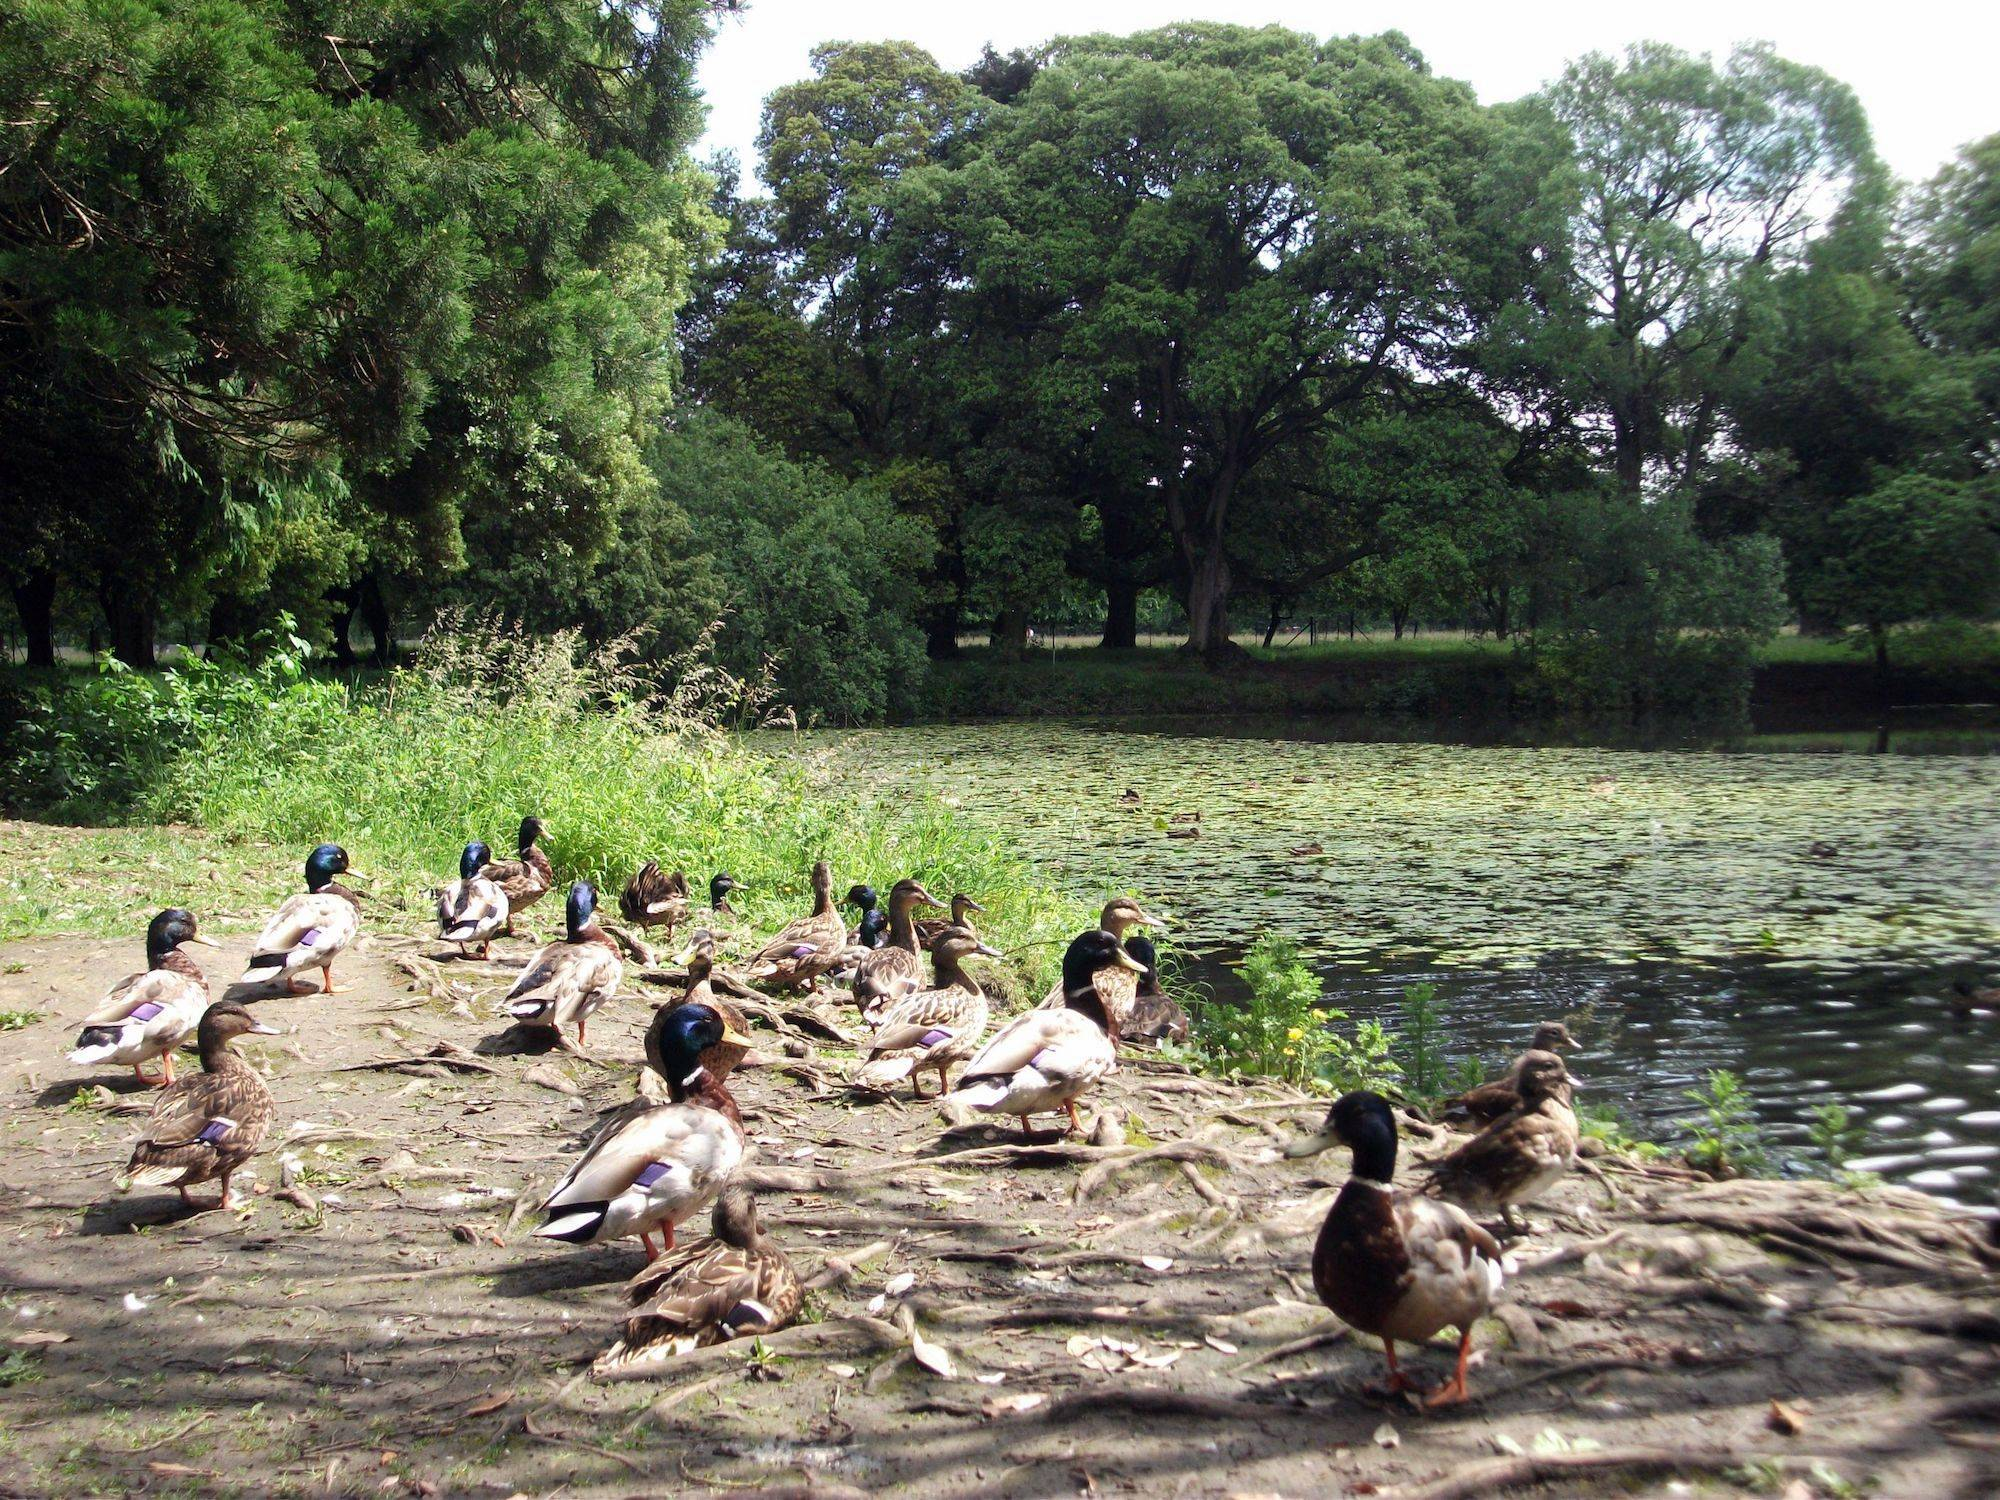 A gathering of ducks in the Park. OPW.